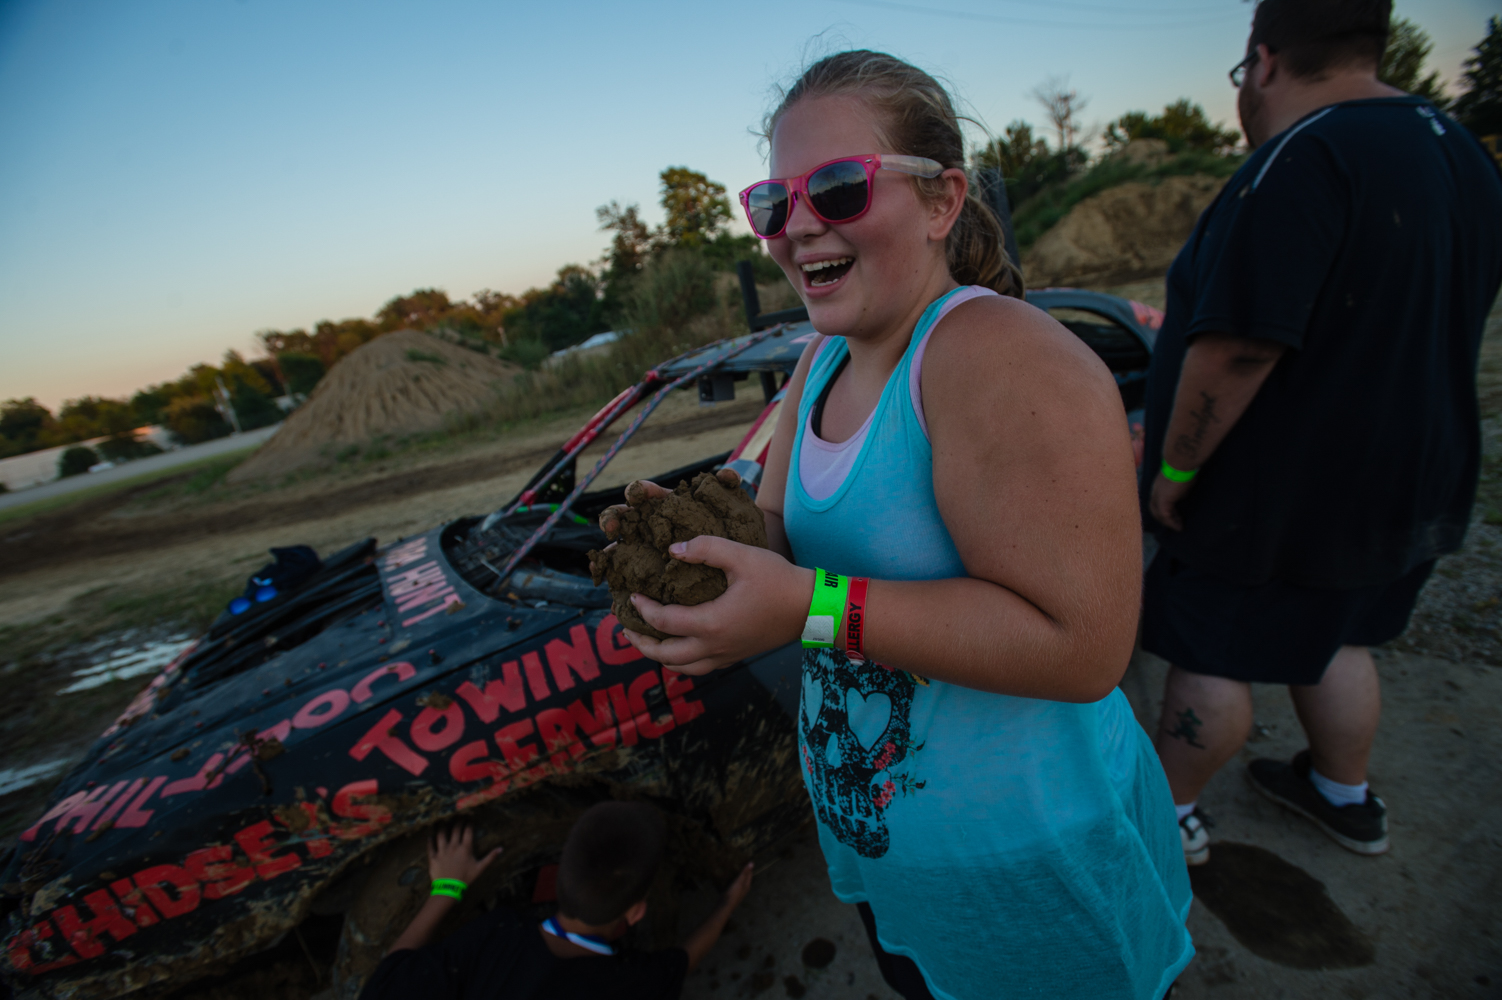 A contestant's sister collects the mud that falls off winning cars from each race.